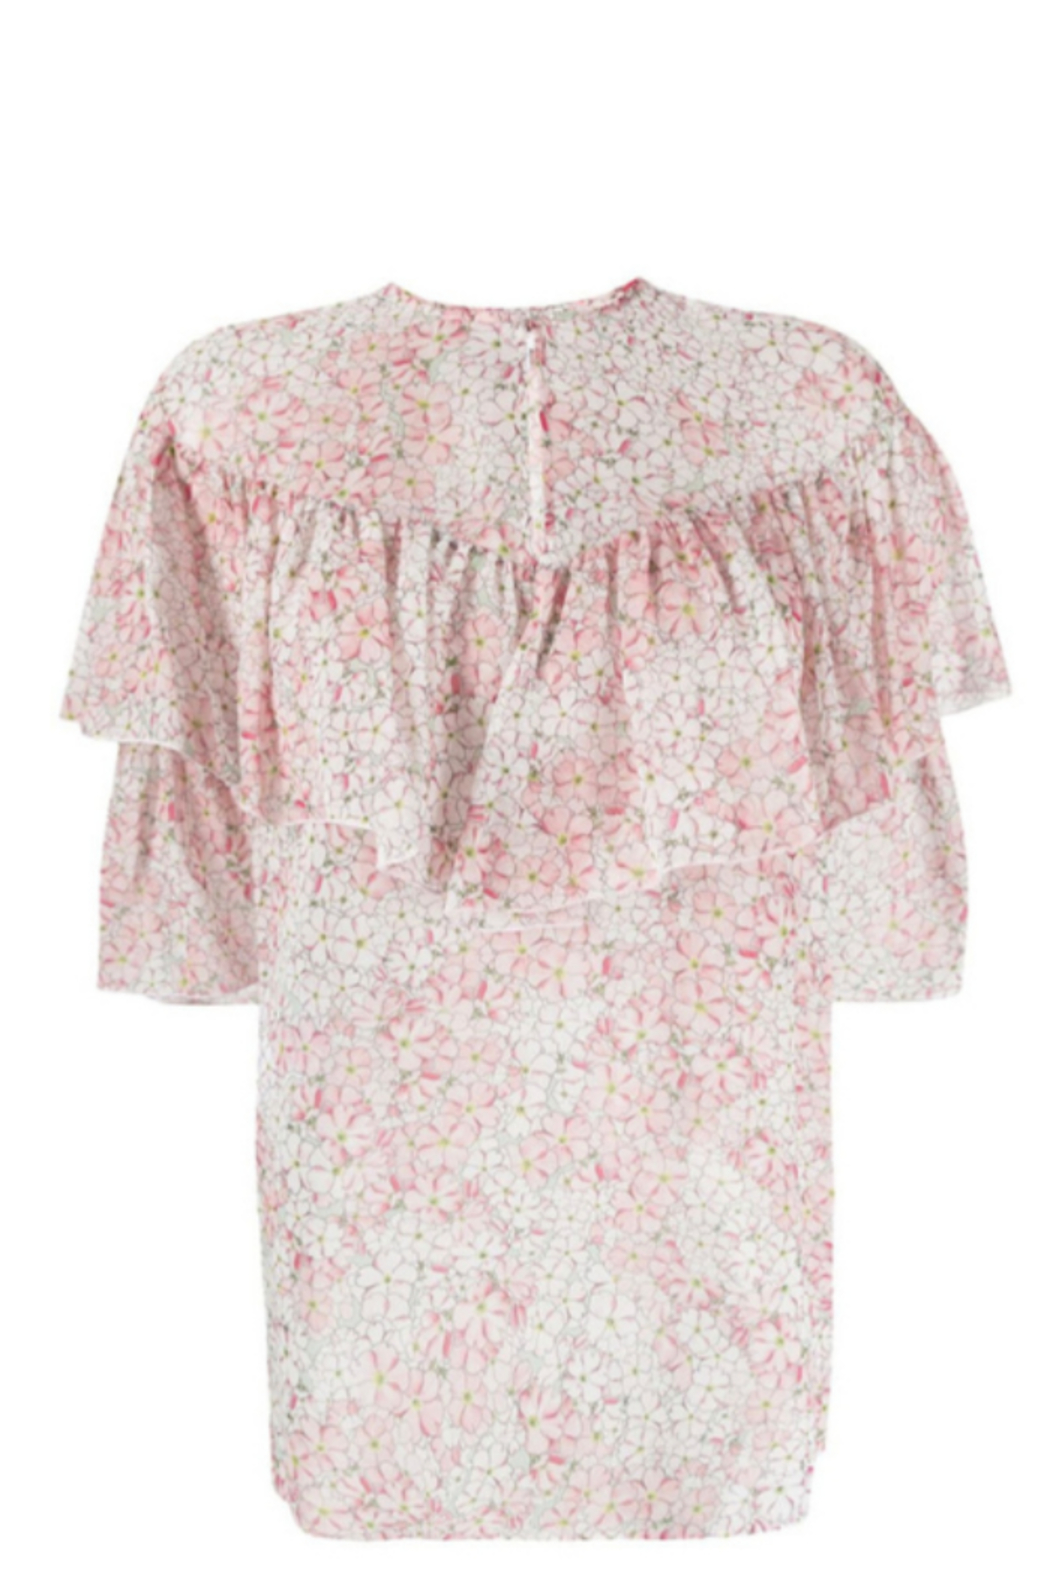 Giambattista Valli FLORAL PRINTED BLOUSE - Back Cropped Image